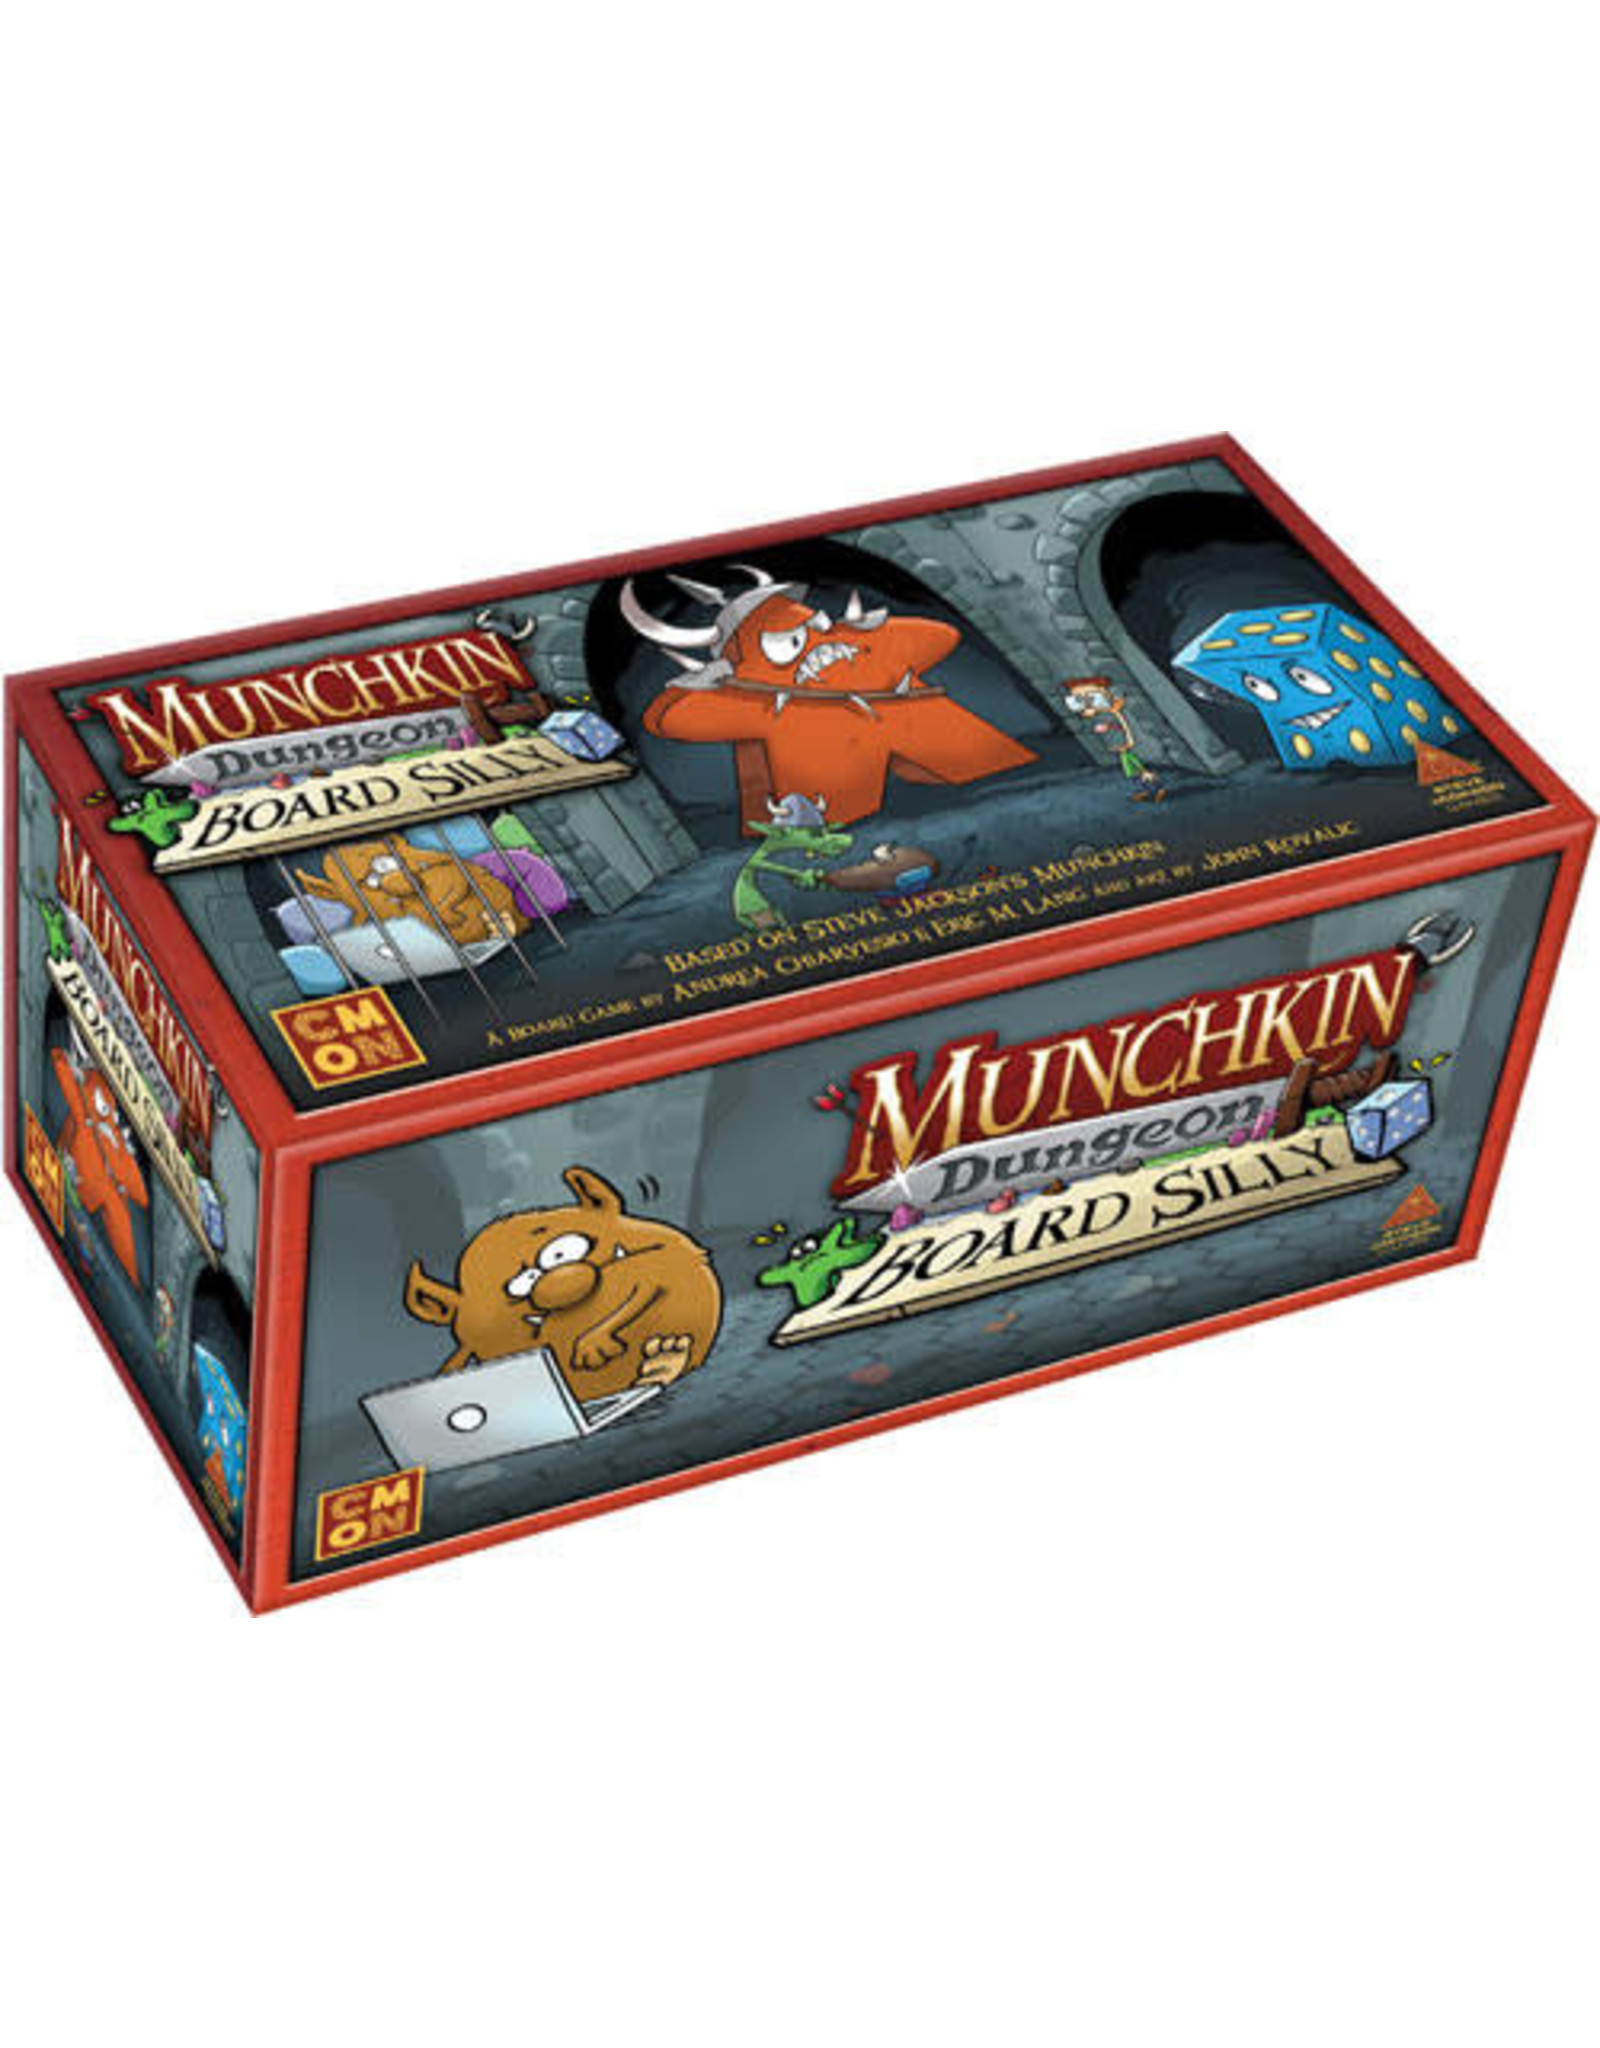 CMON Munchkin Dungeon Board Silly Expansion